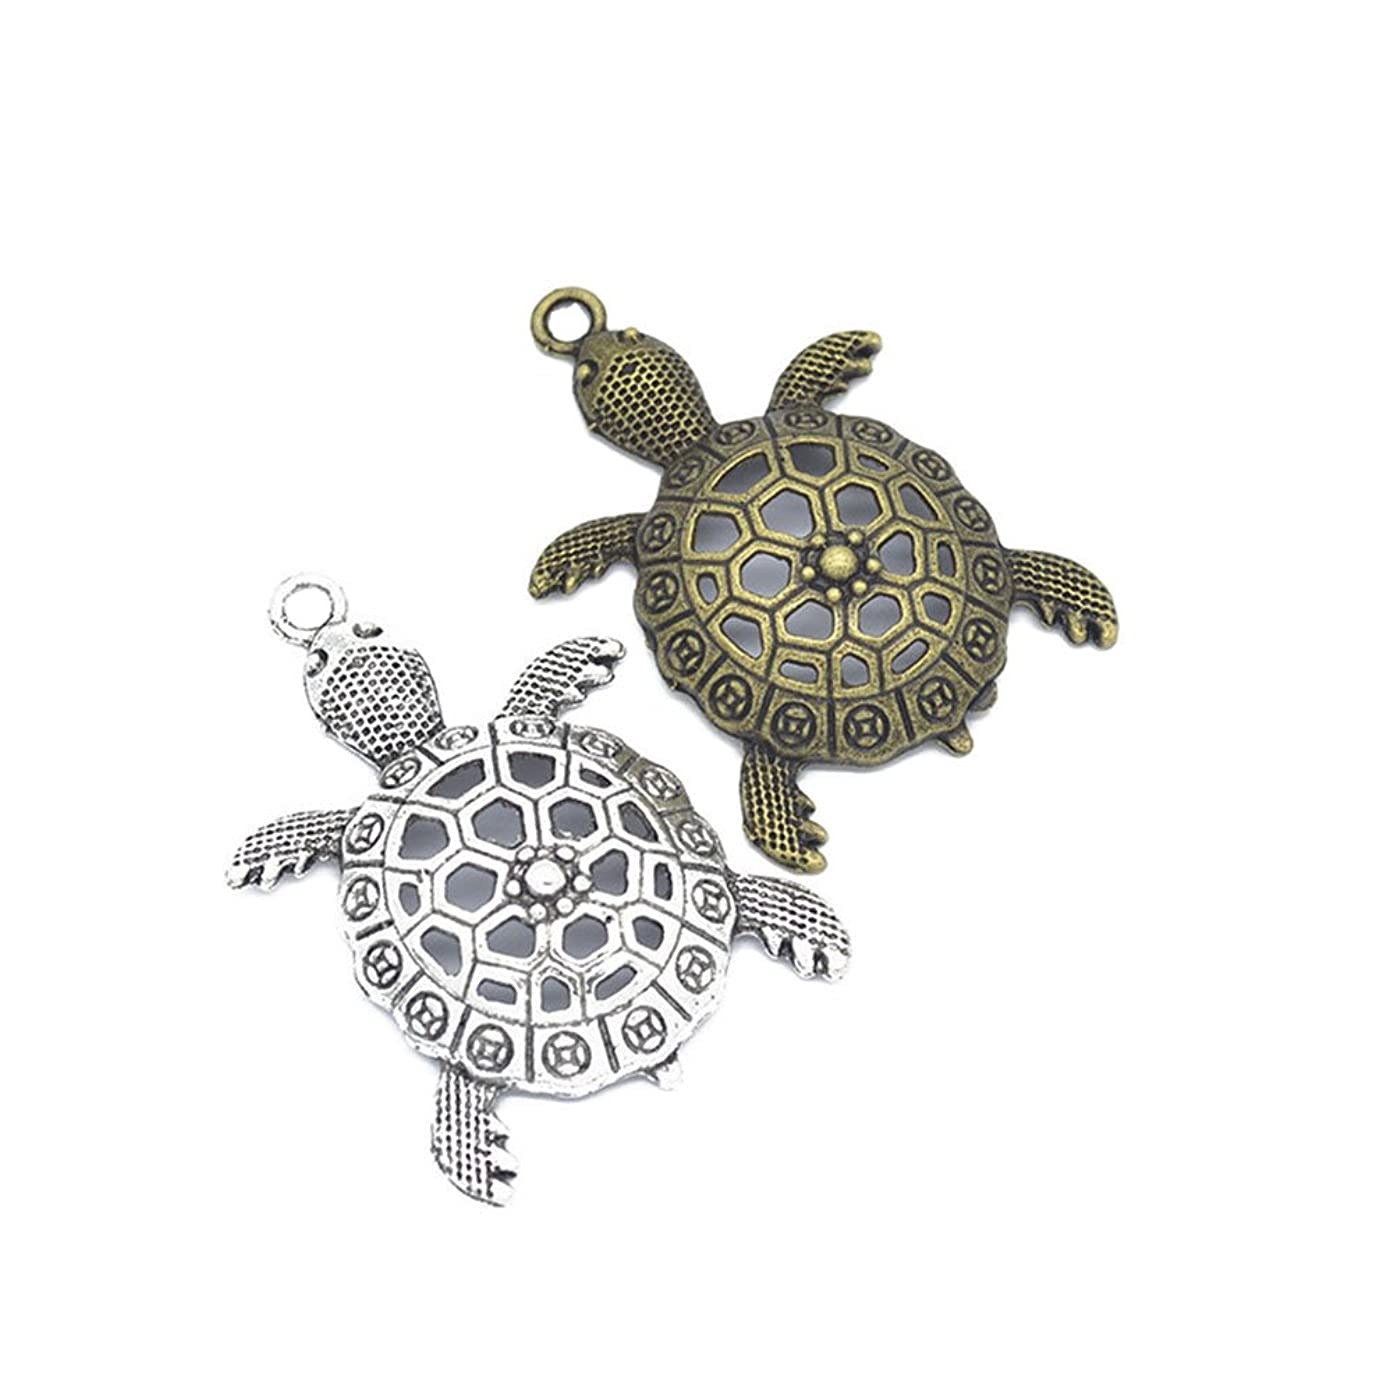 10pcs Antique Silver Bronze Tortoise Turtle Sea Charms Pendant Jewelry Findings for Jewelry Making Necklace Bracelet DIY 55x38mm(10PCS)